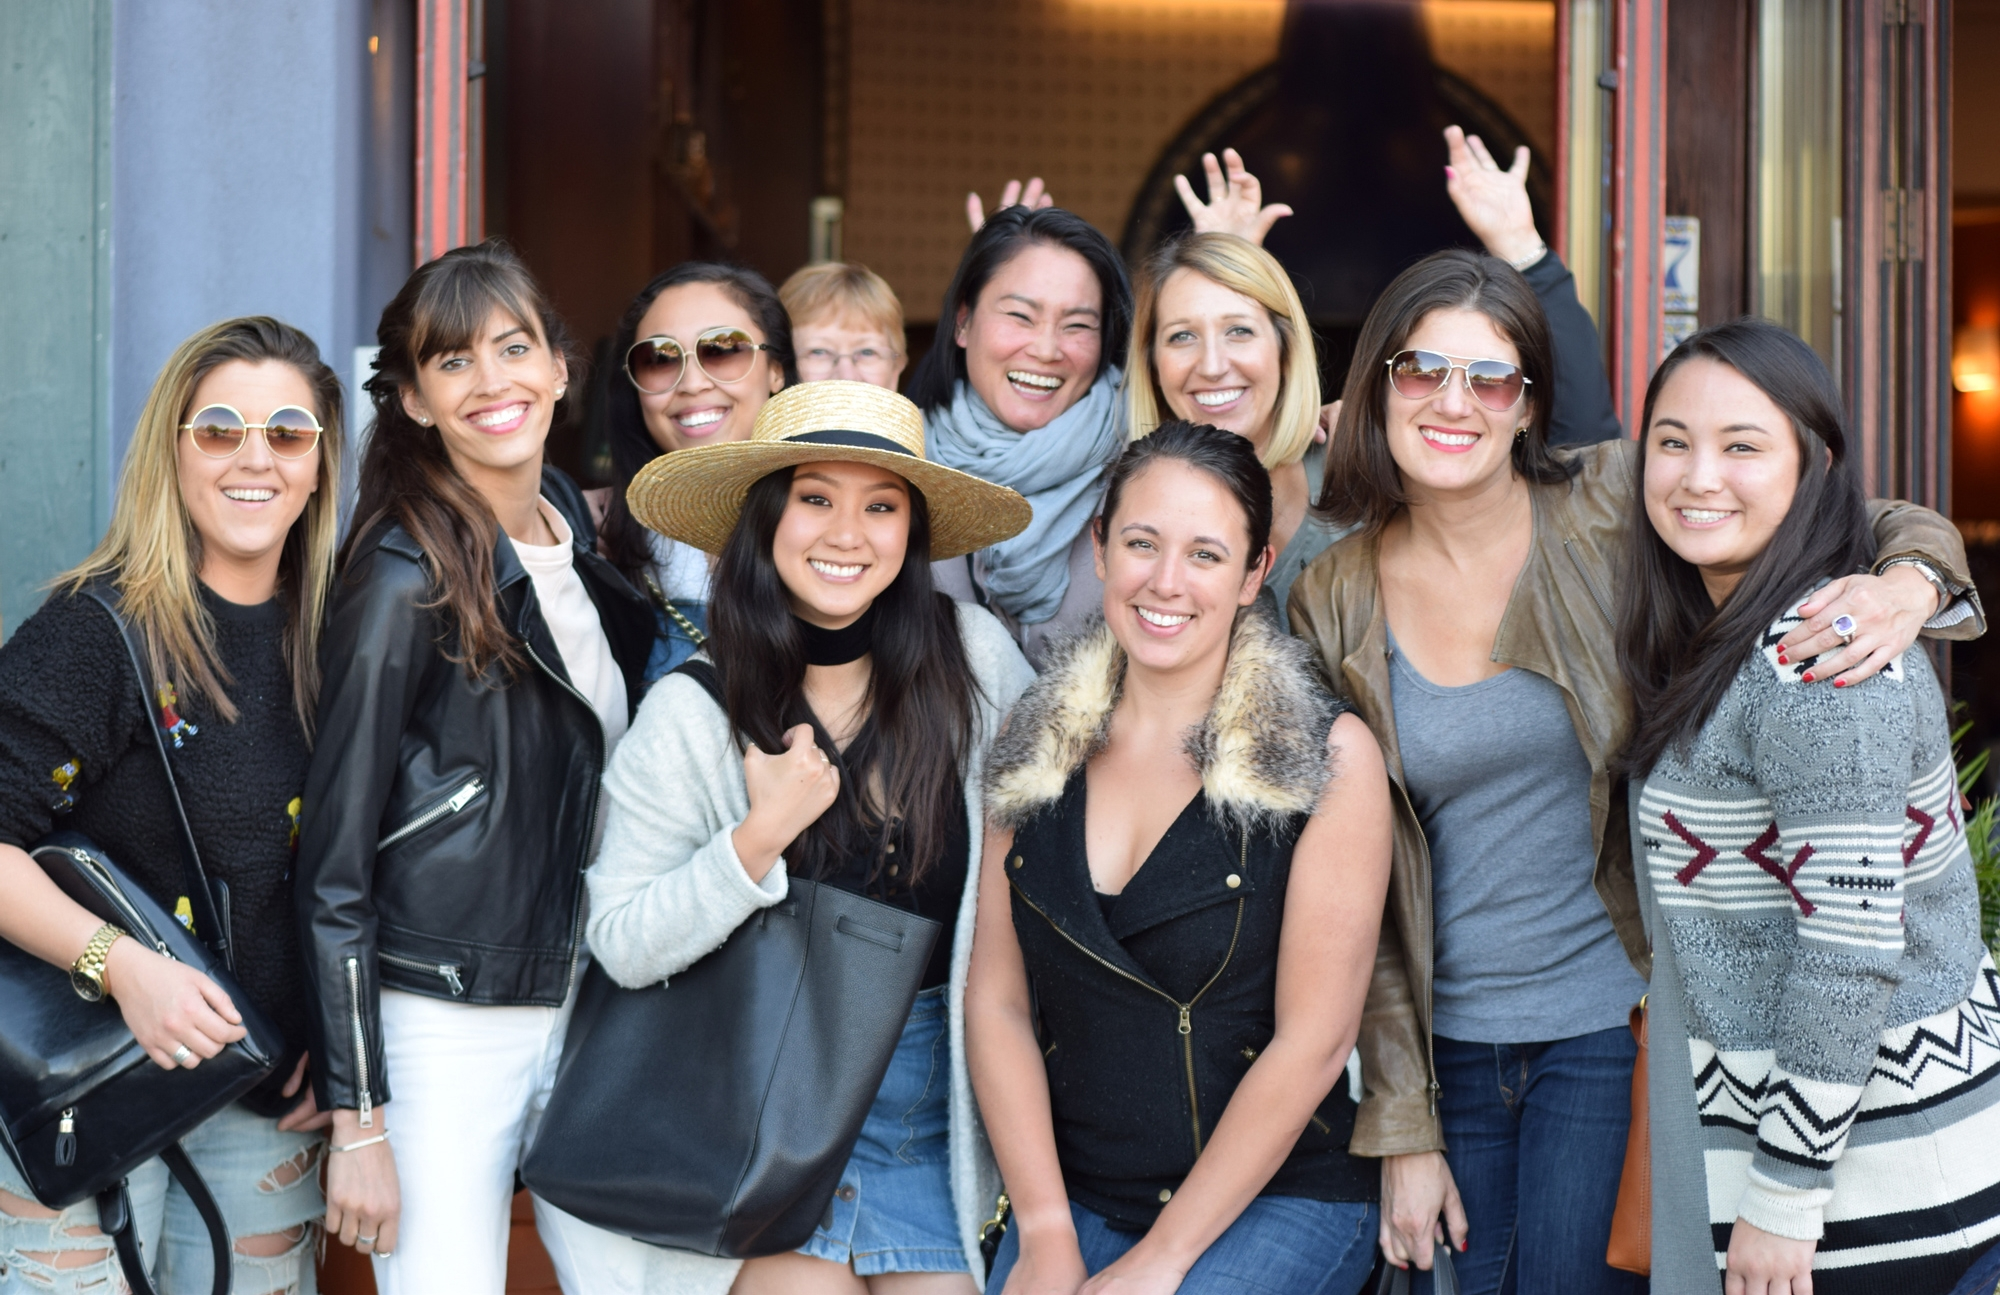 Influencer & blogger afternoon in Sausalito at Copita and Poggio